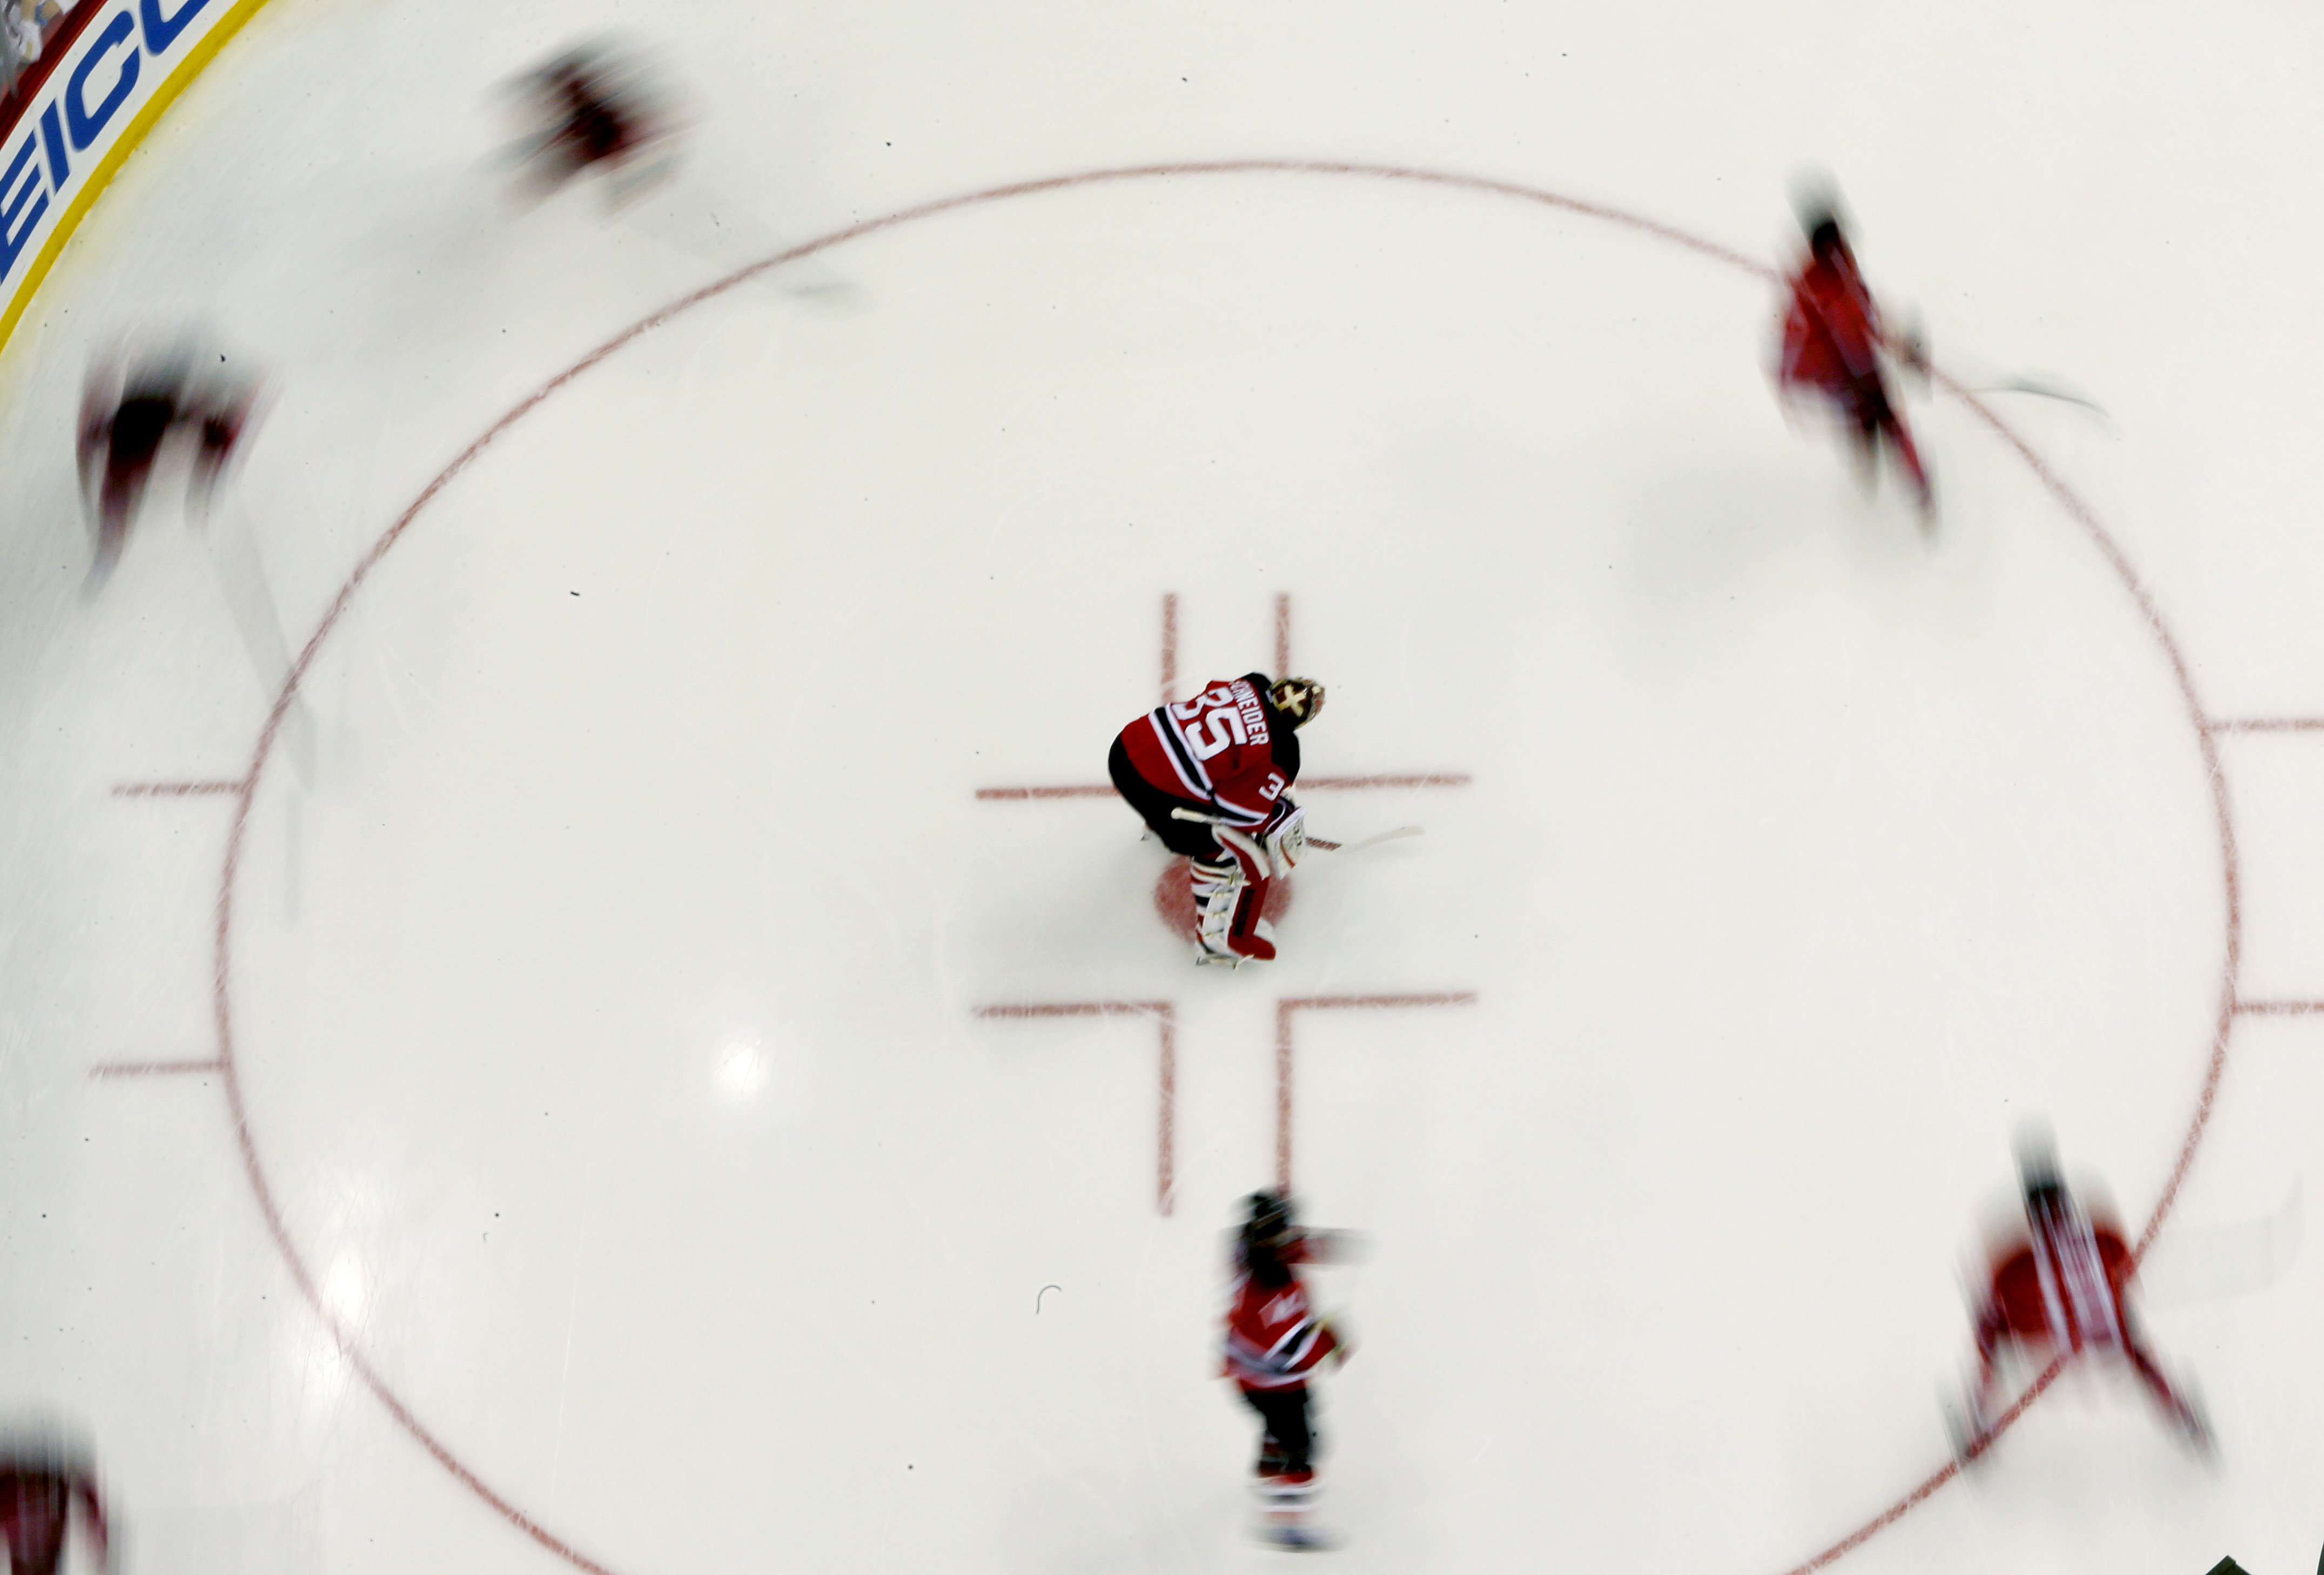 New Jersey Devils goalie Cory Schneider, center, rests while teammates skate during warmups prior to an NHL hockey game against the New York Islanders, Friday, Feb. 19, 2016, in Newark, N.J. (AP Photo/Julio Cortez)